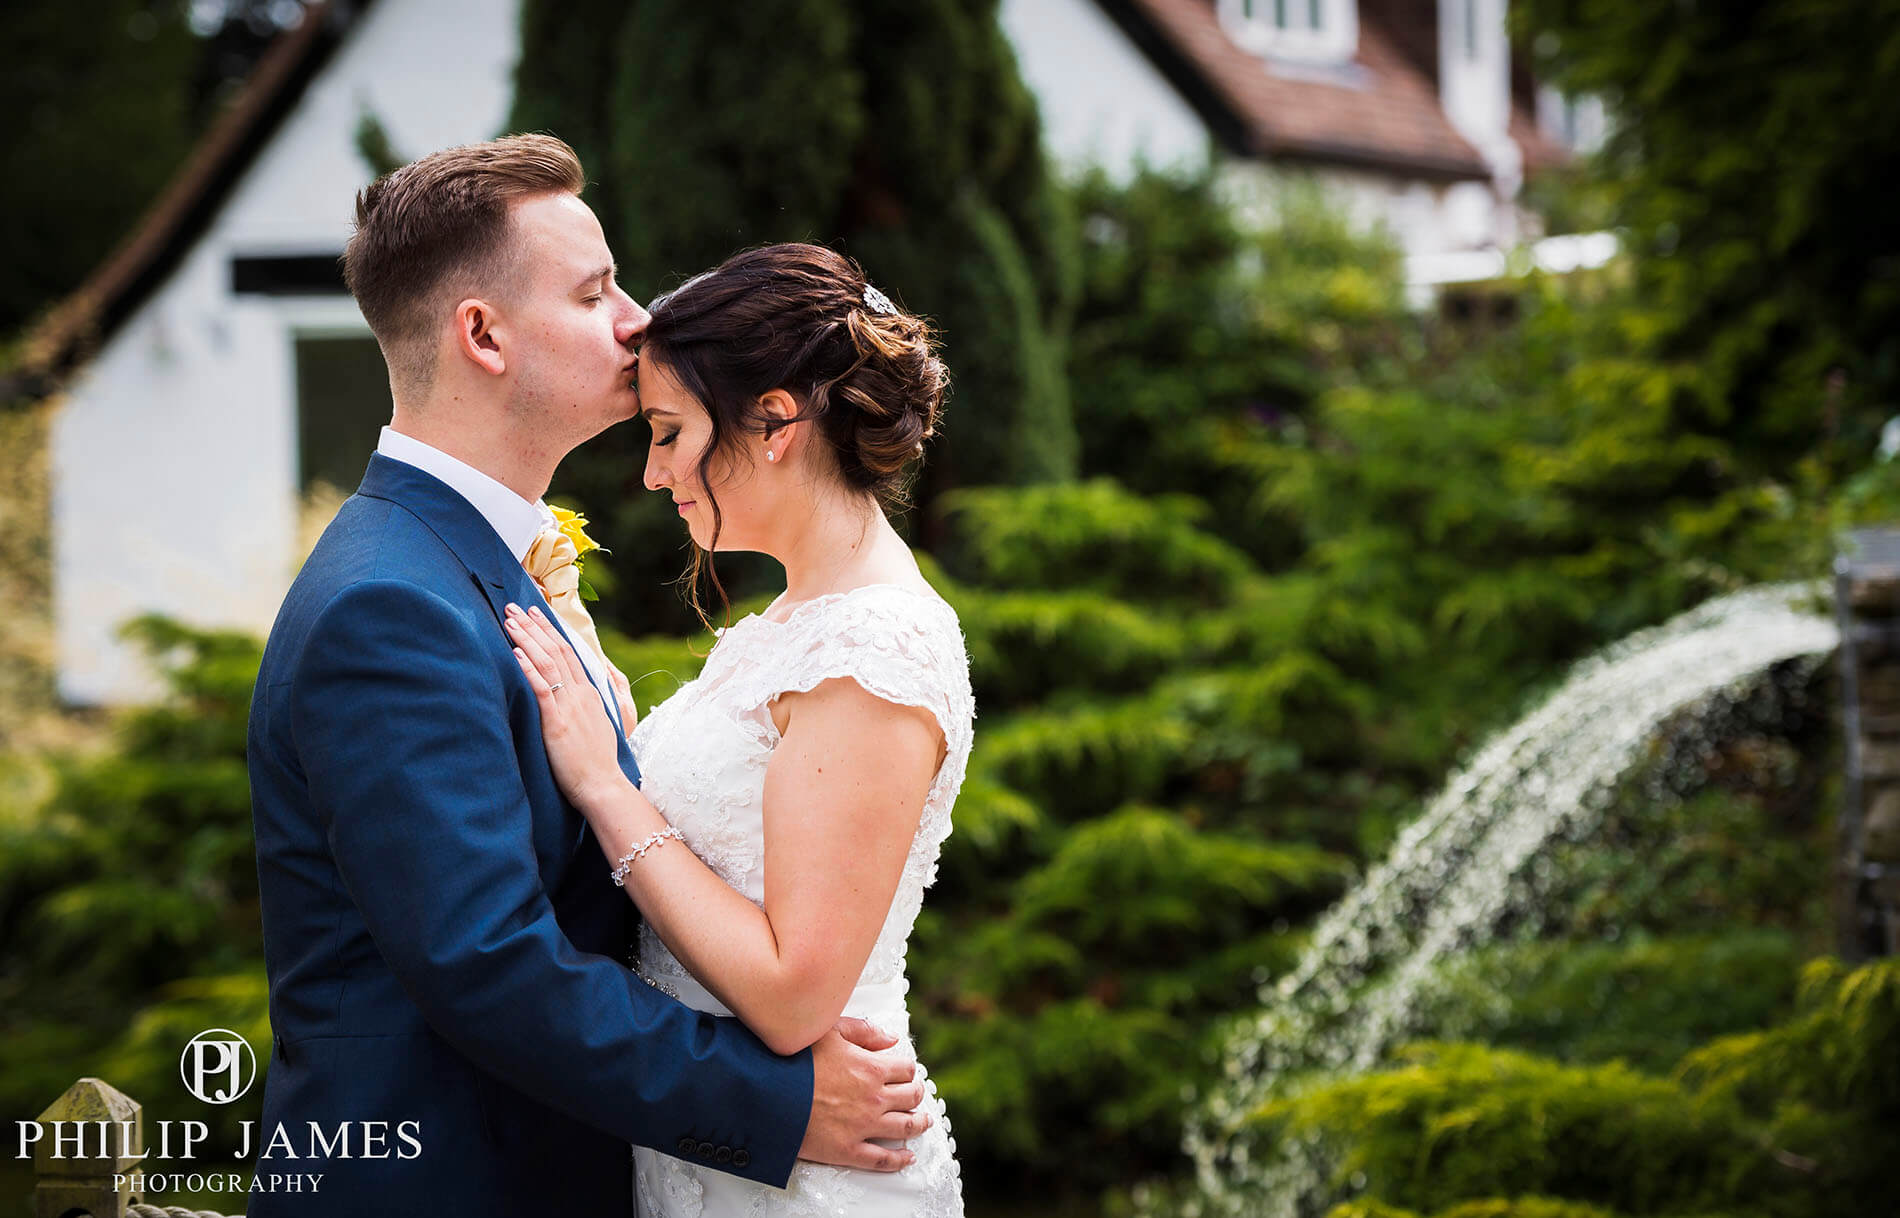 Philip James specializing in Wedding Photography Birmingham - Moments (88 of 170)